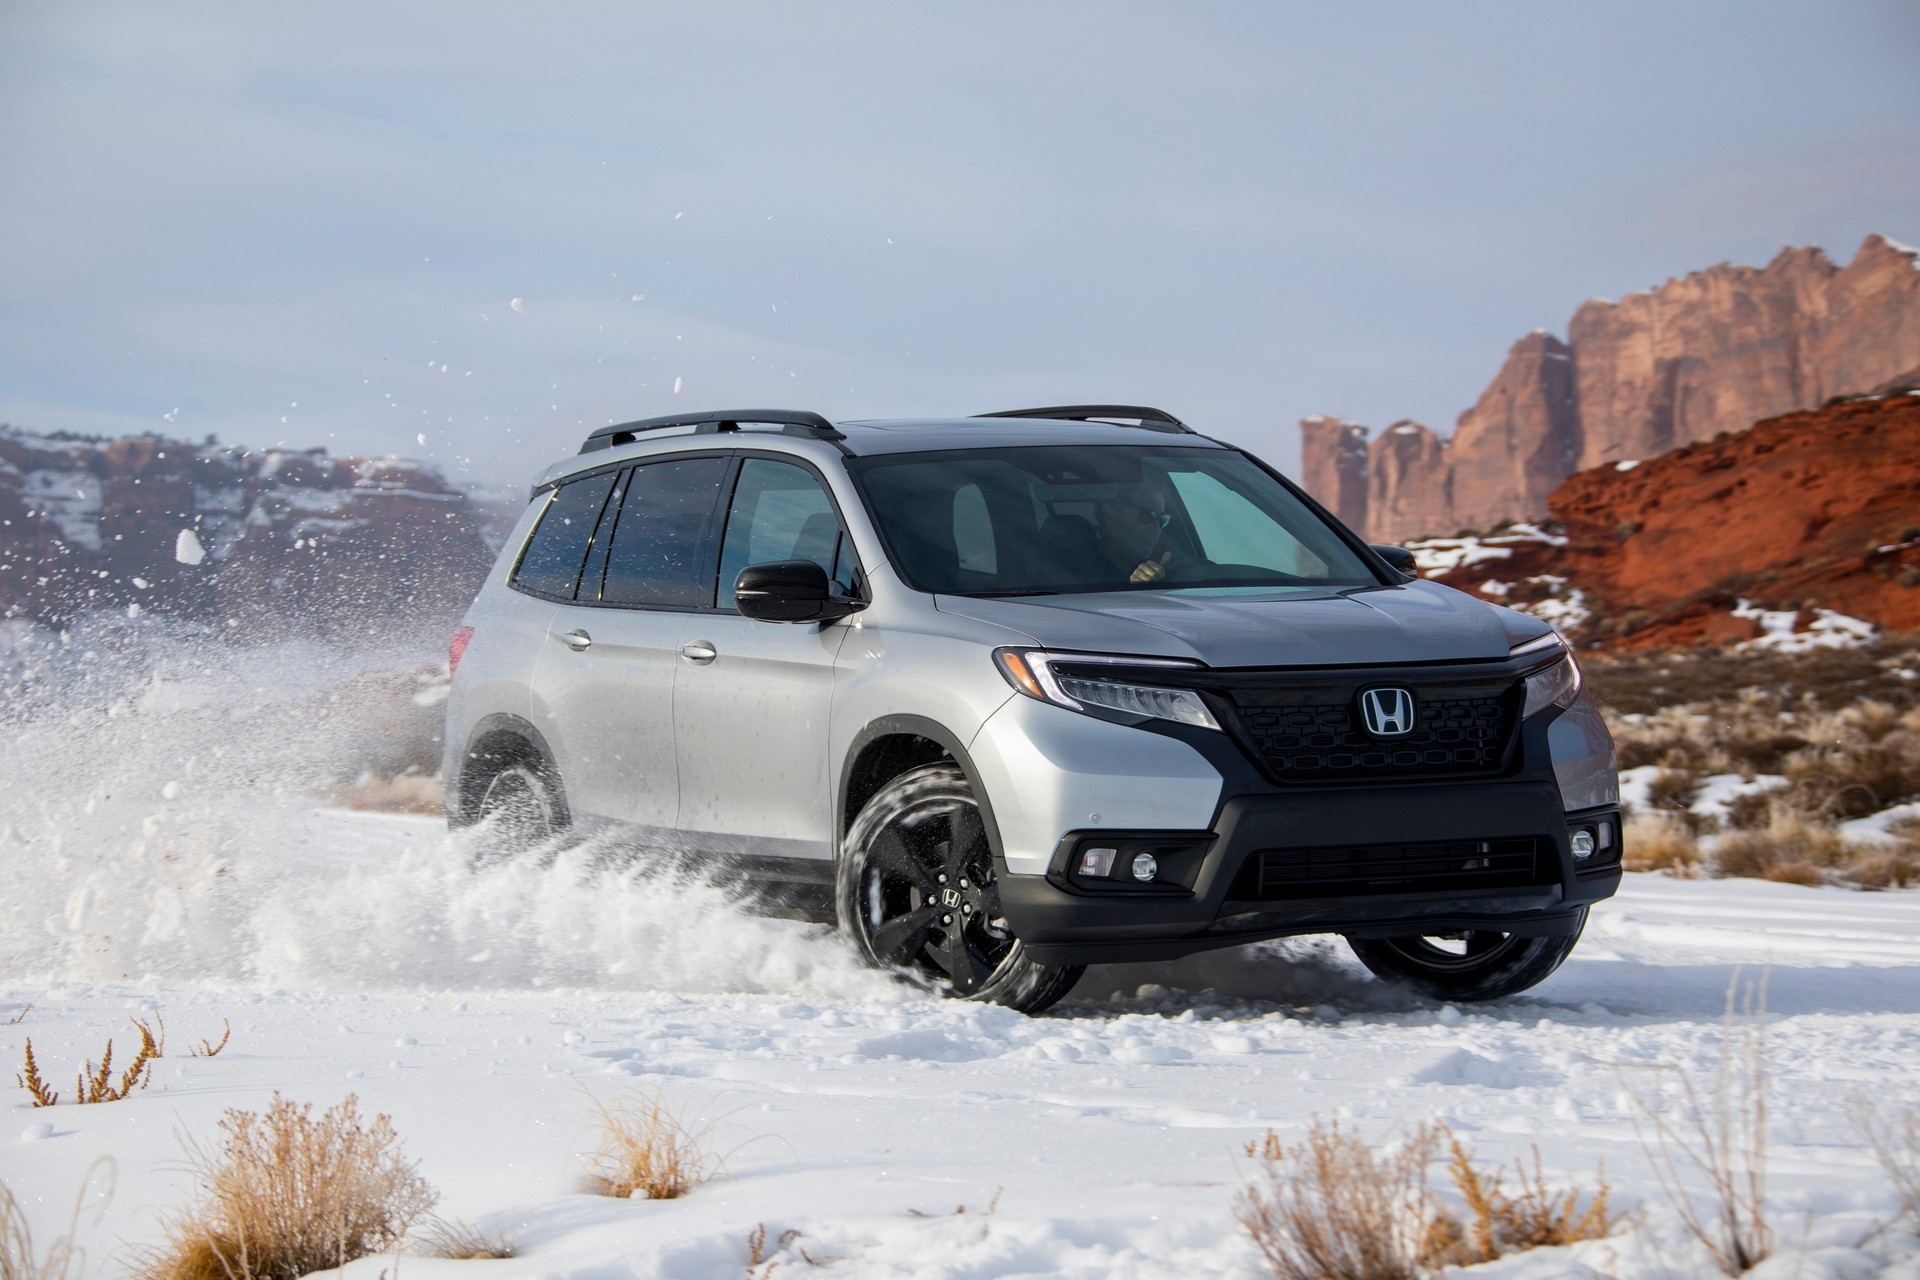 2021-honda-passport-12.jpg